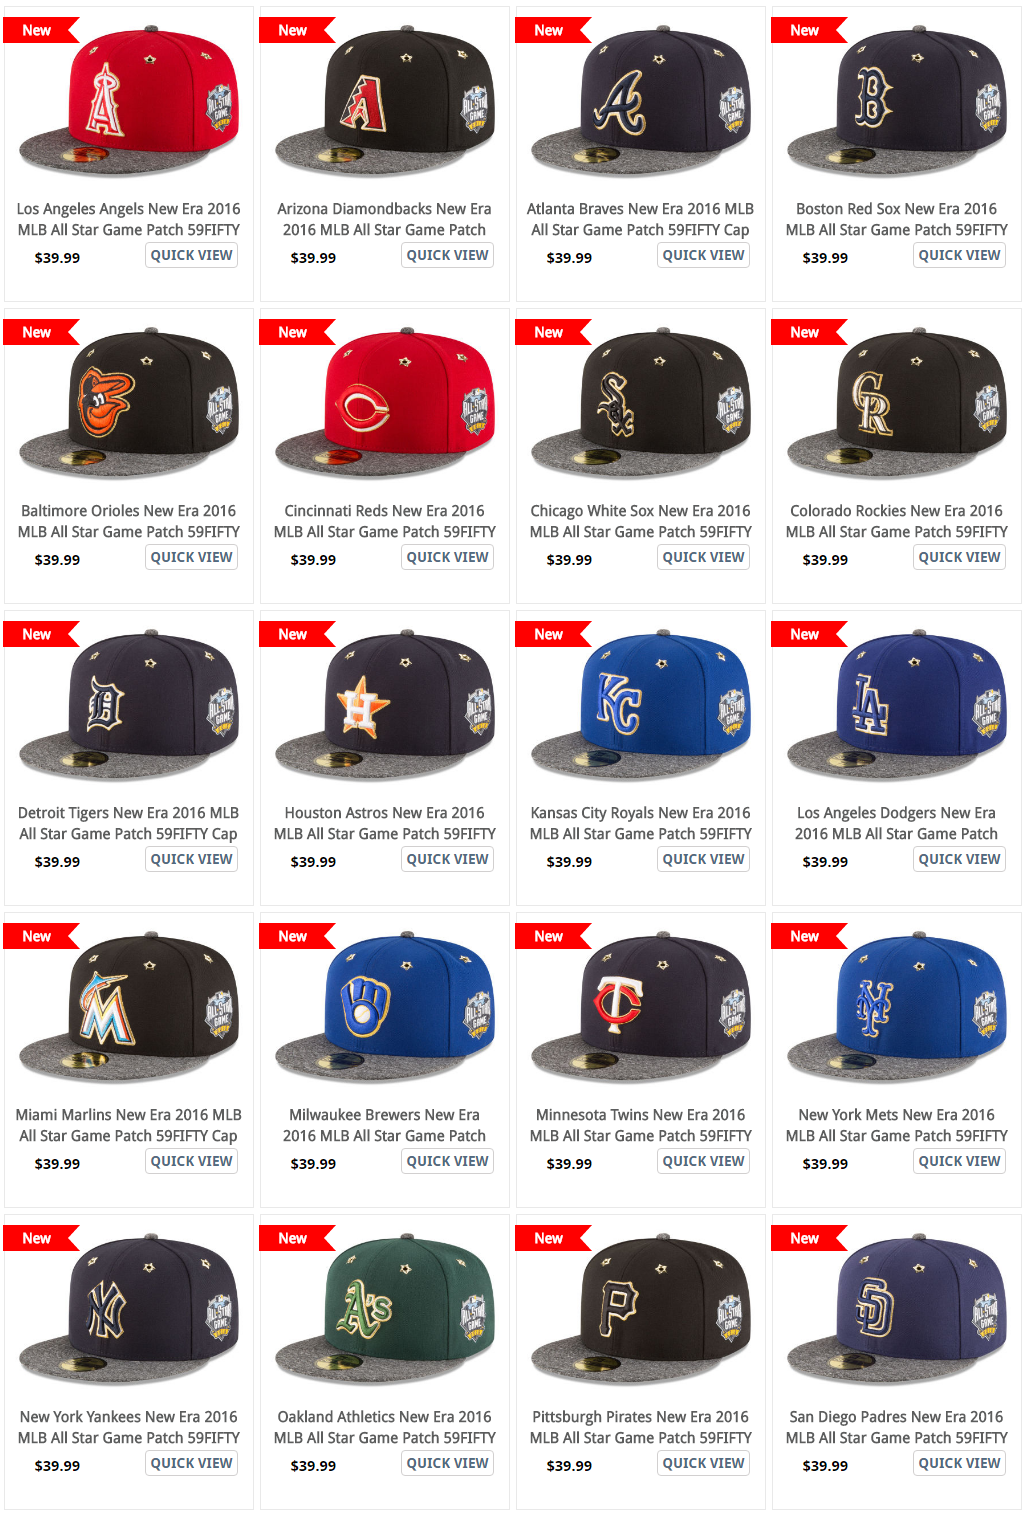 c5099be19223c 2016 MLB All Star Game Hat with Free Shipping discount code